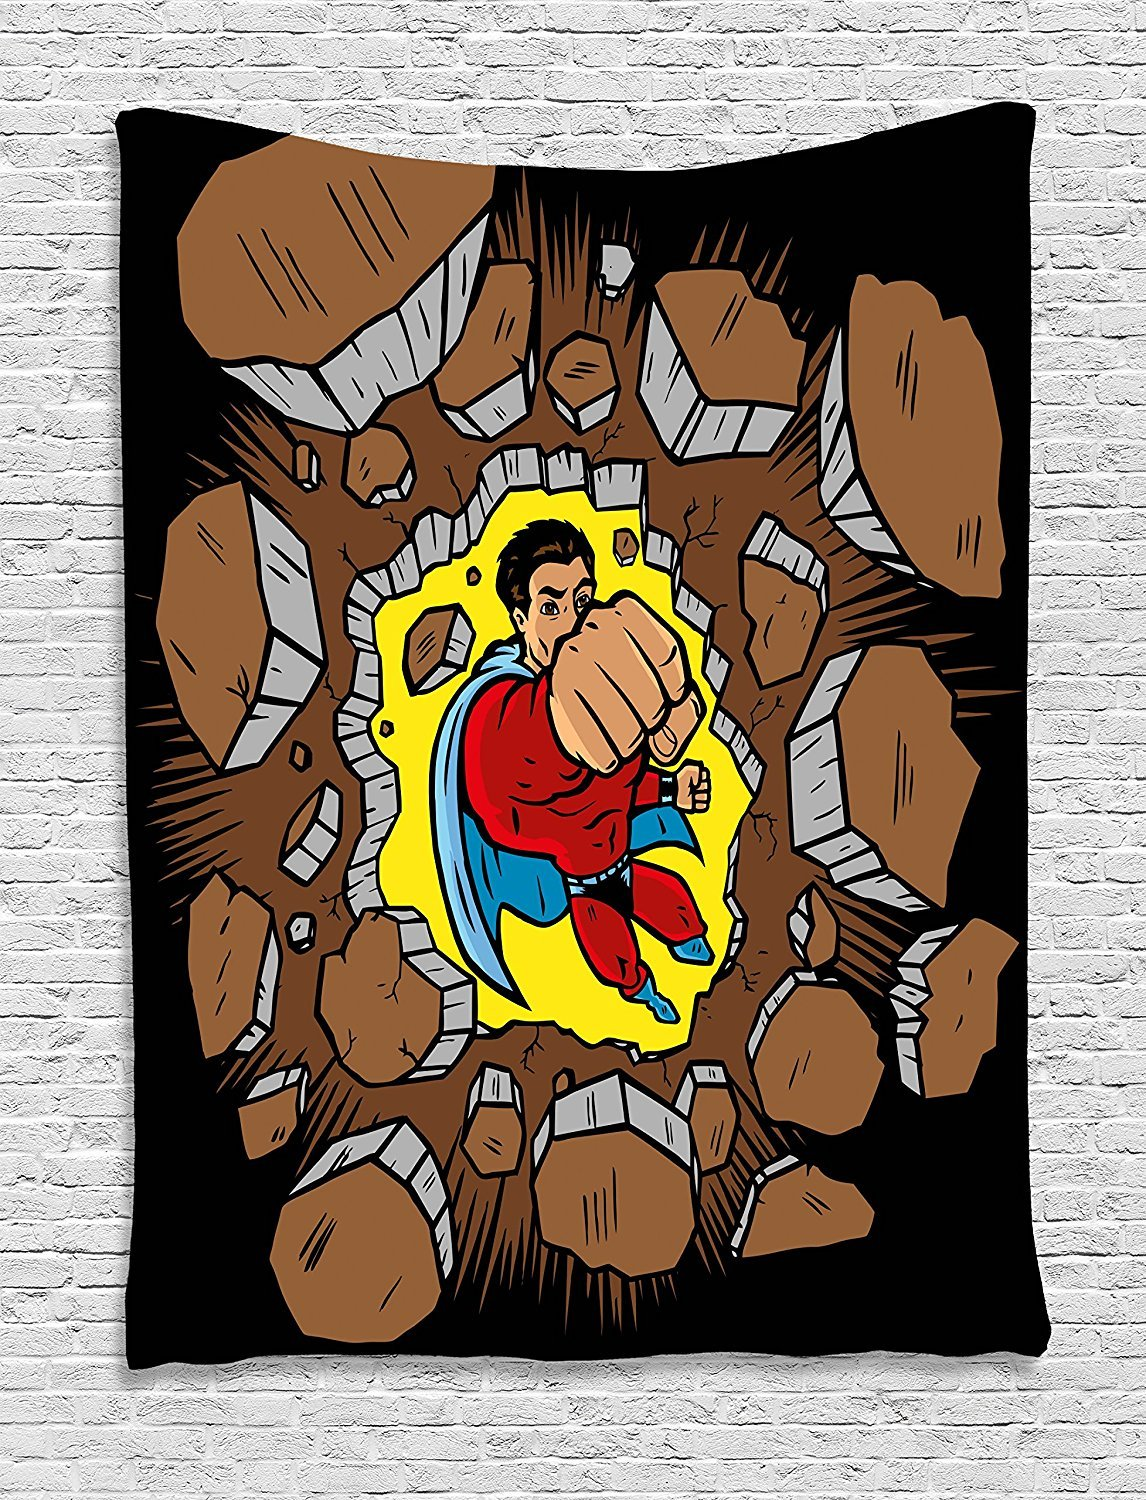 asddcdfdd Superhero Tapestry, Strong Man Smashing the Wall Heroic Punch Success Business Retro Print, Wall Hanging for Bedroom Living Room Dorm, 60 W X 80 L Inches, Caramel Black Yellow